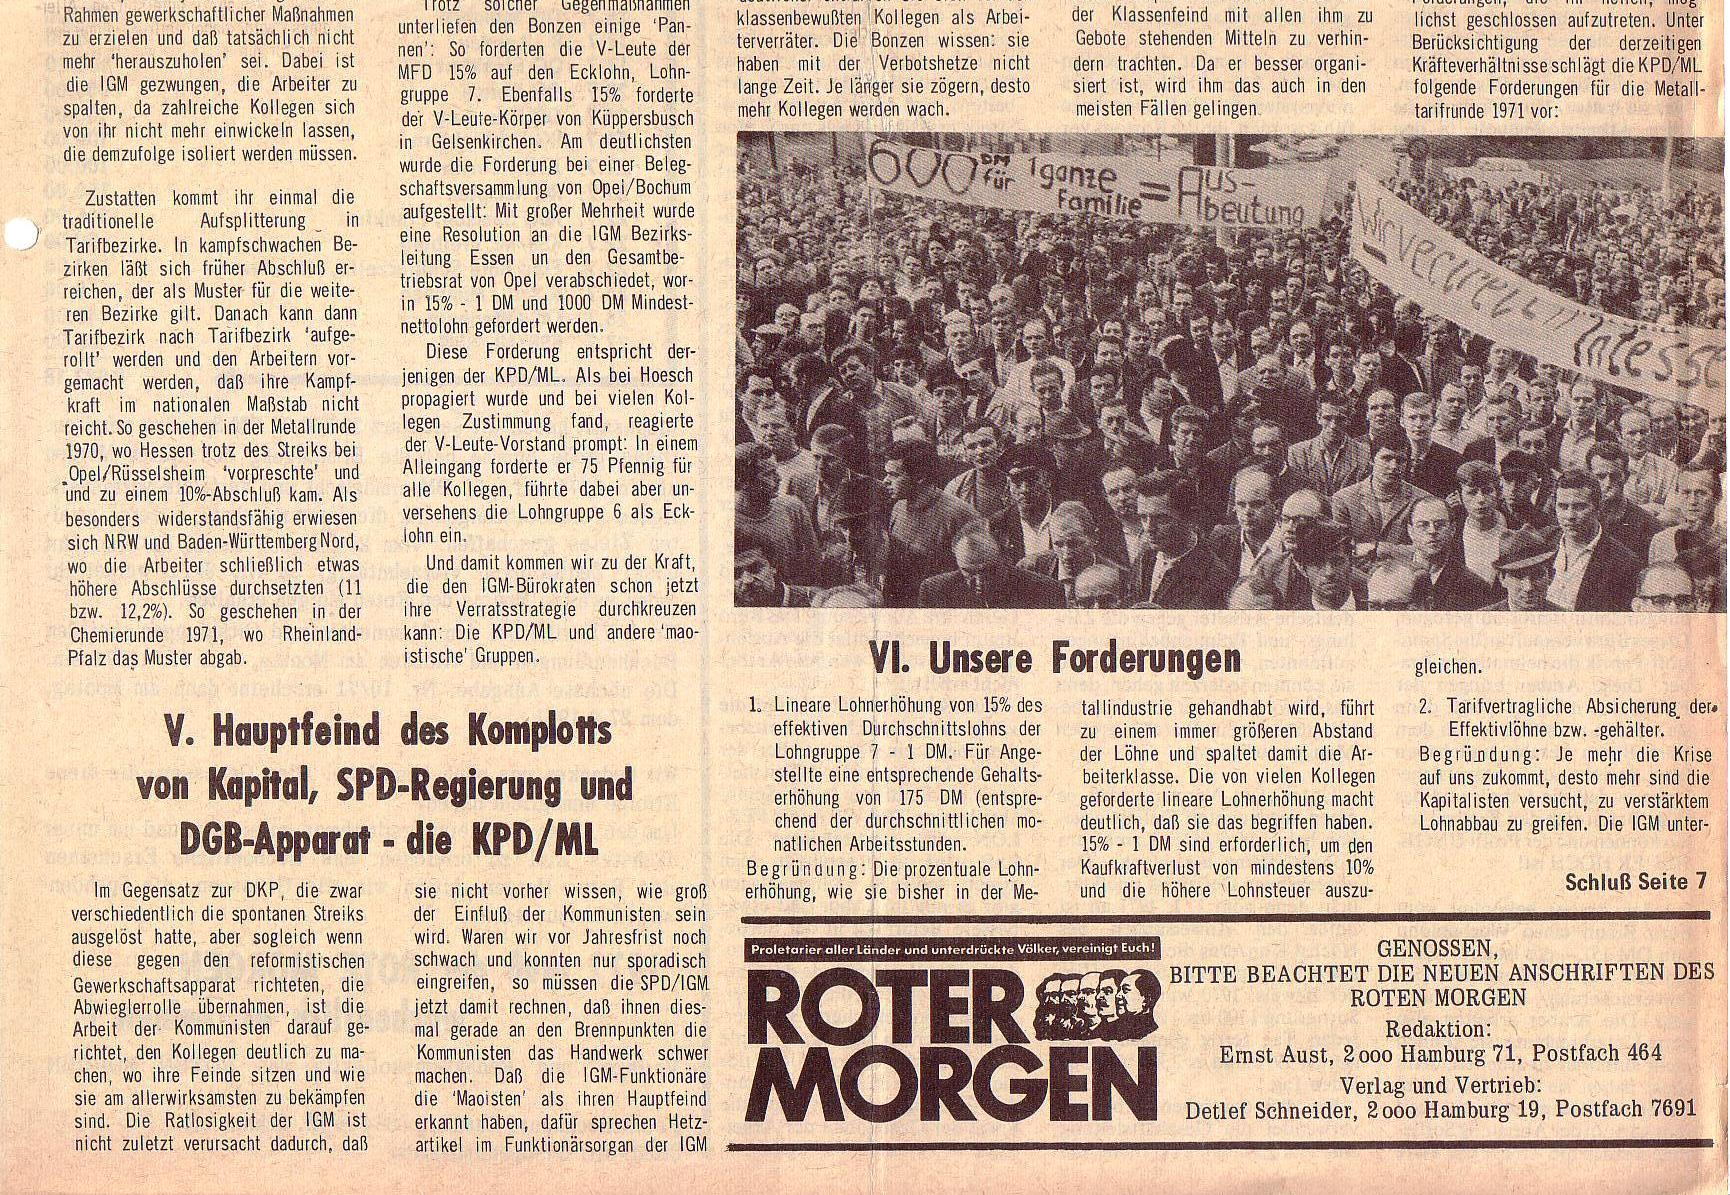 Roter Morgen, 5. Jg., August 1971, Nr. 8, Seite 3b